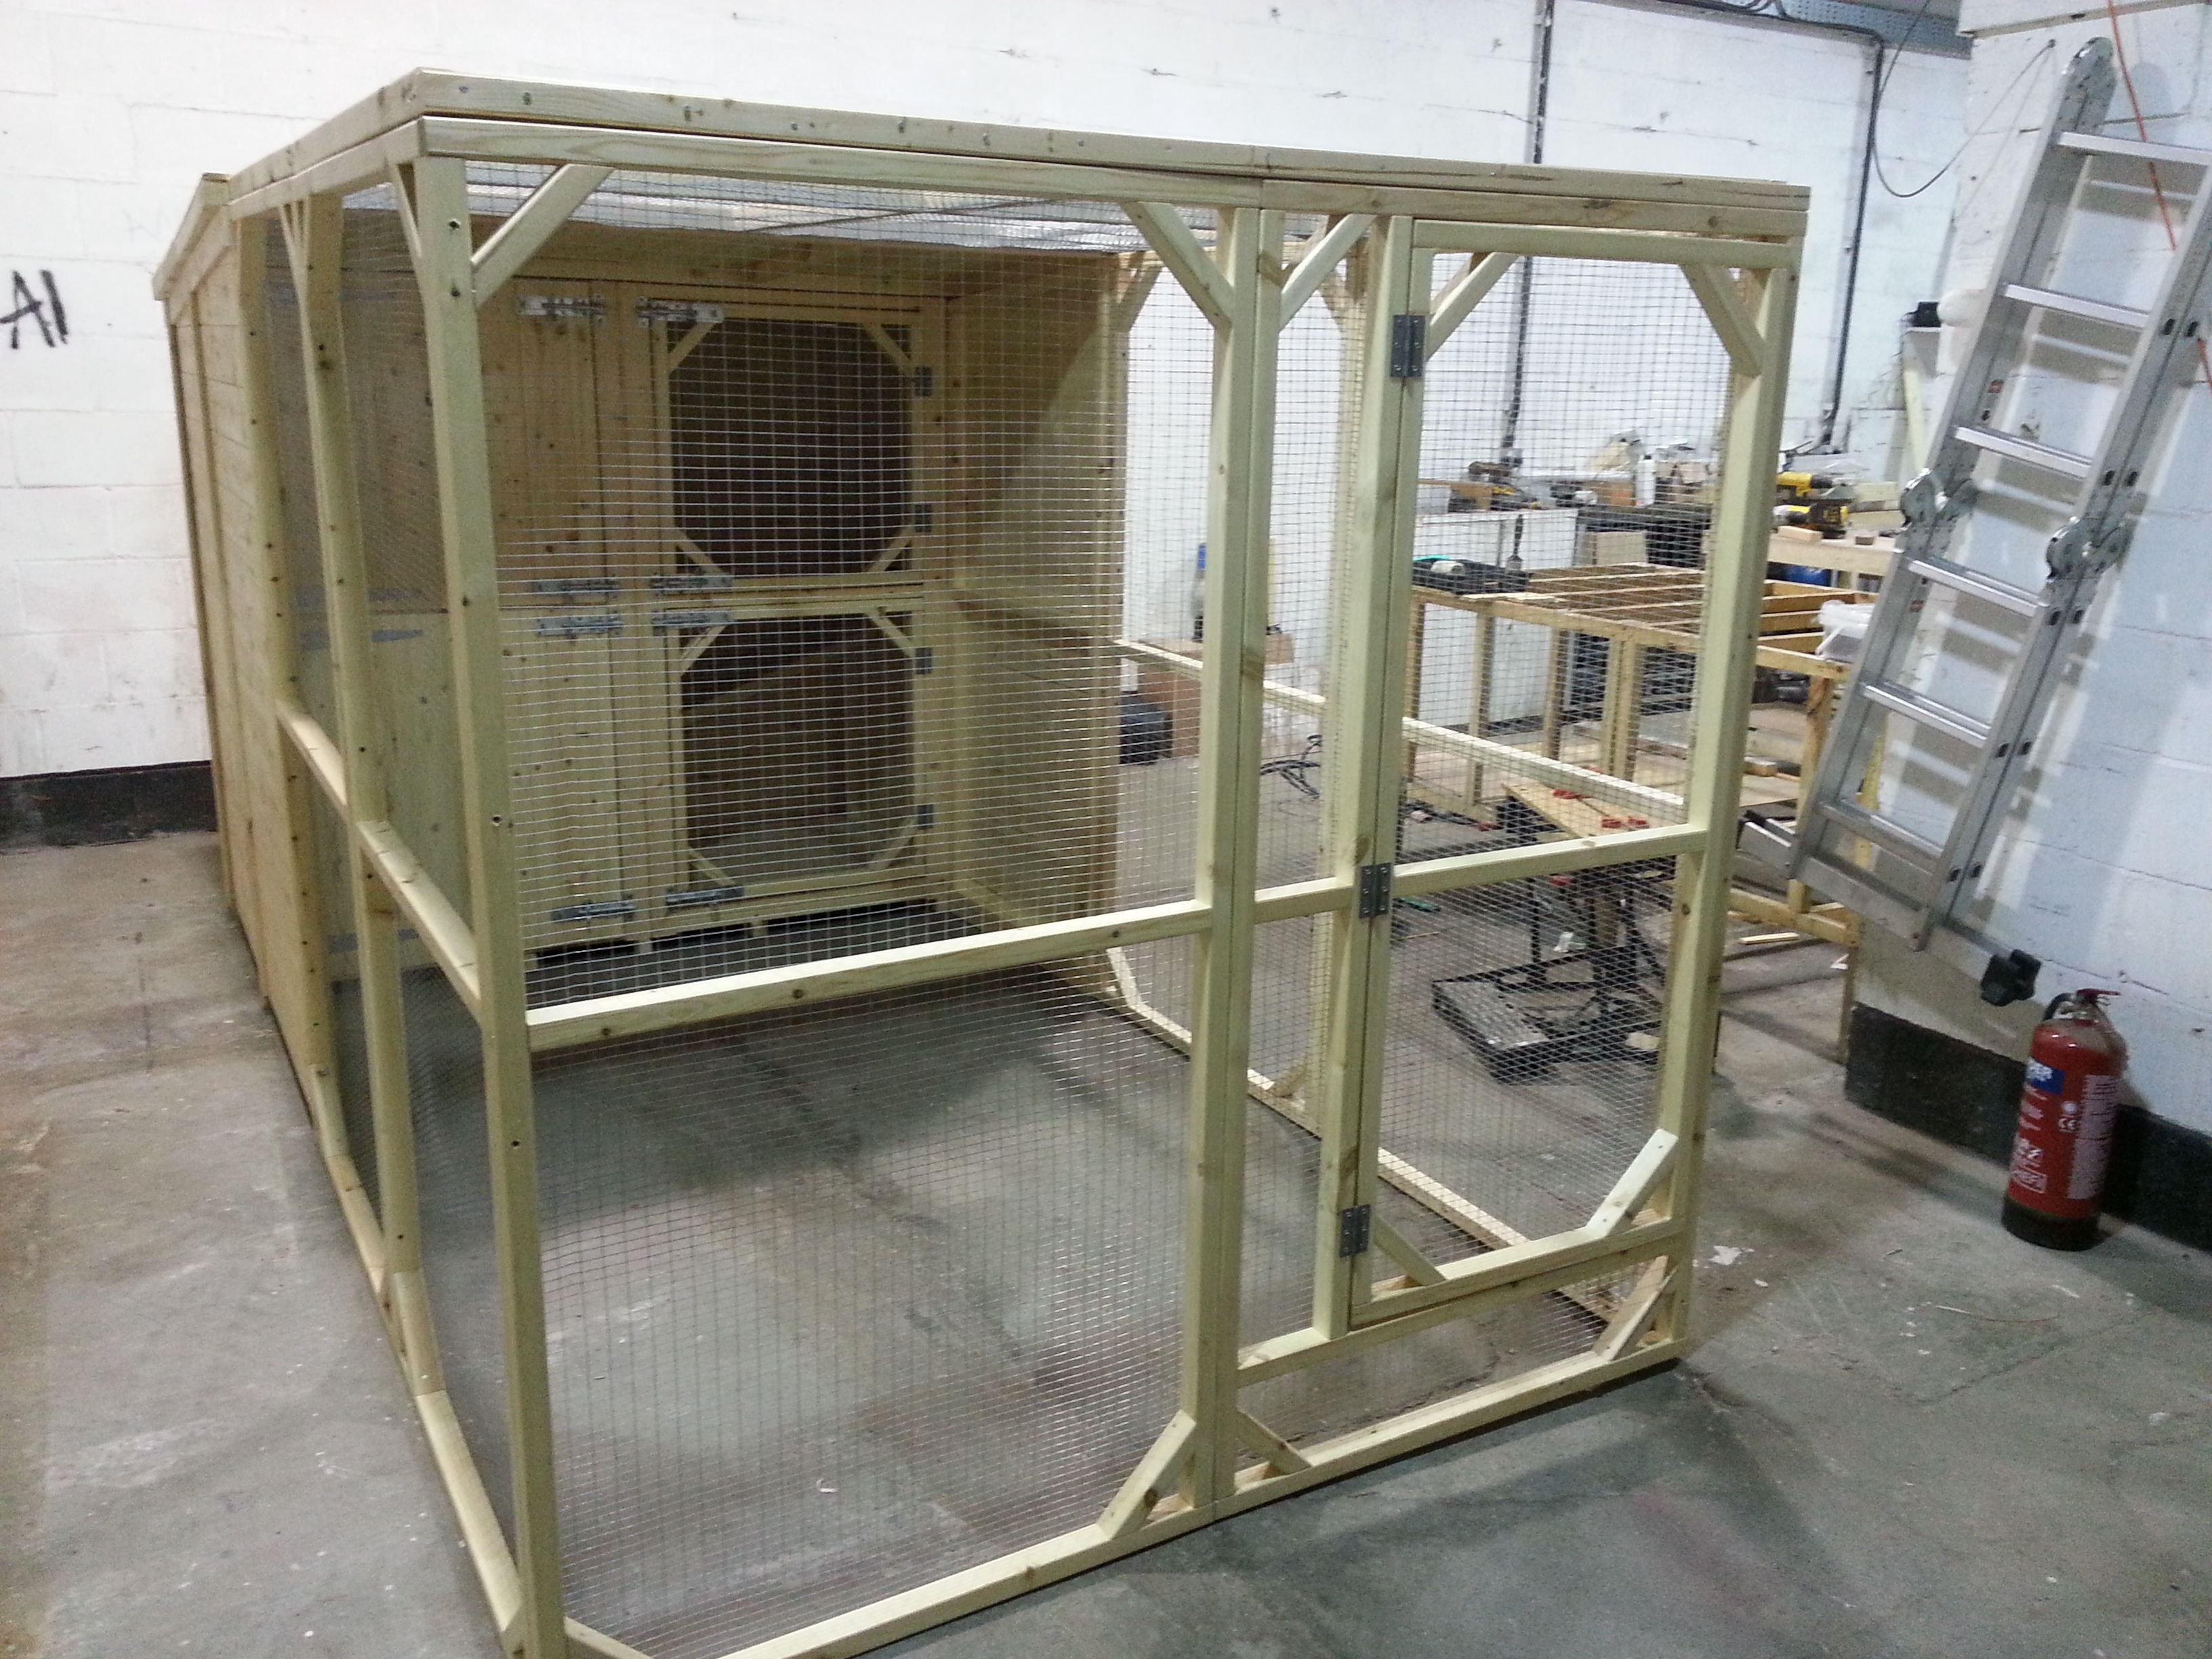 Large 12x6x6ft Walk In Rabbit Run with integrated Double Hutch at back. Hutch is 6x3x3ft per level.